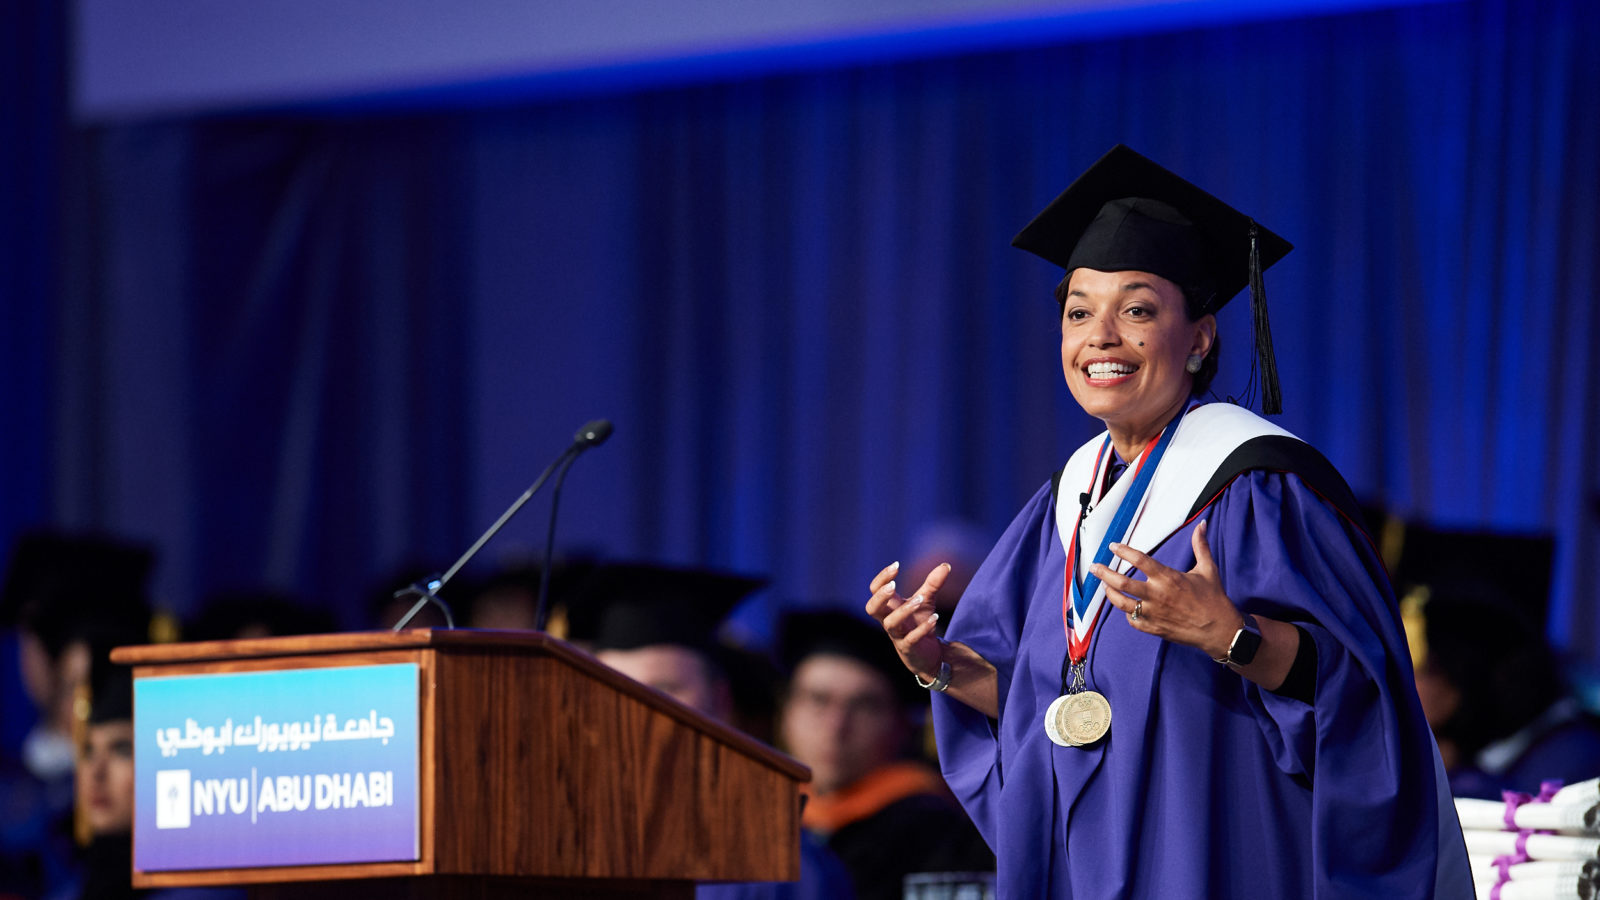 Bonnie St. John at NYU Abu Dhabi's 2019 Commencement